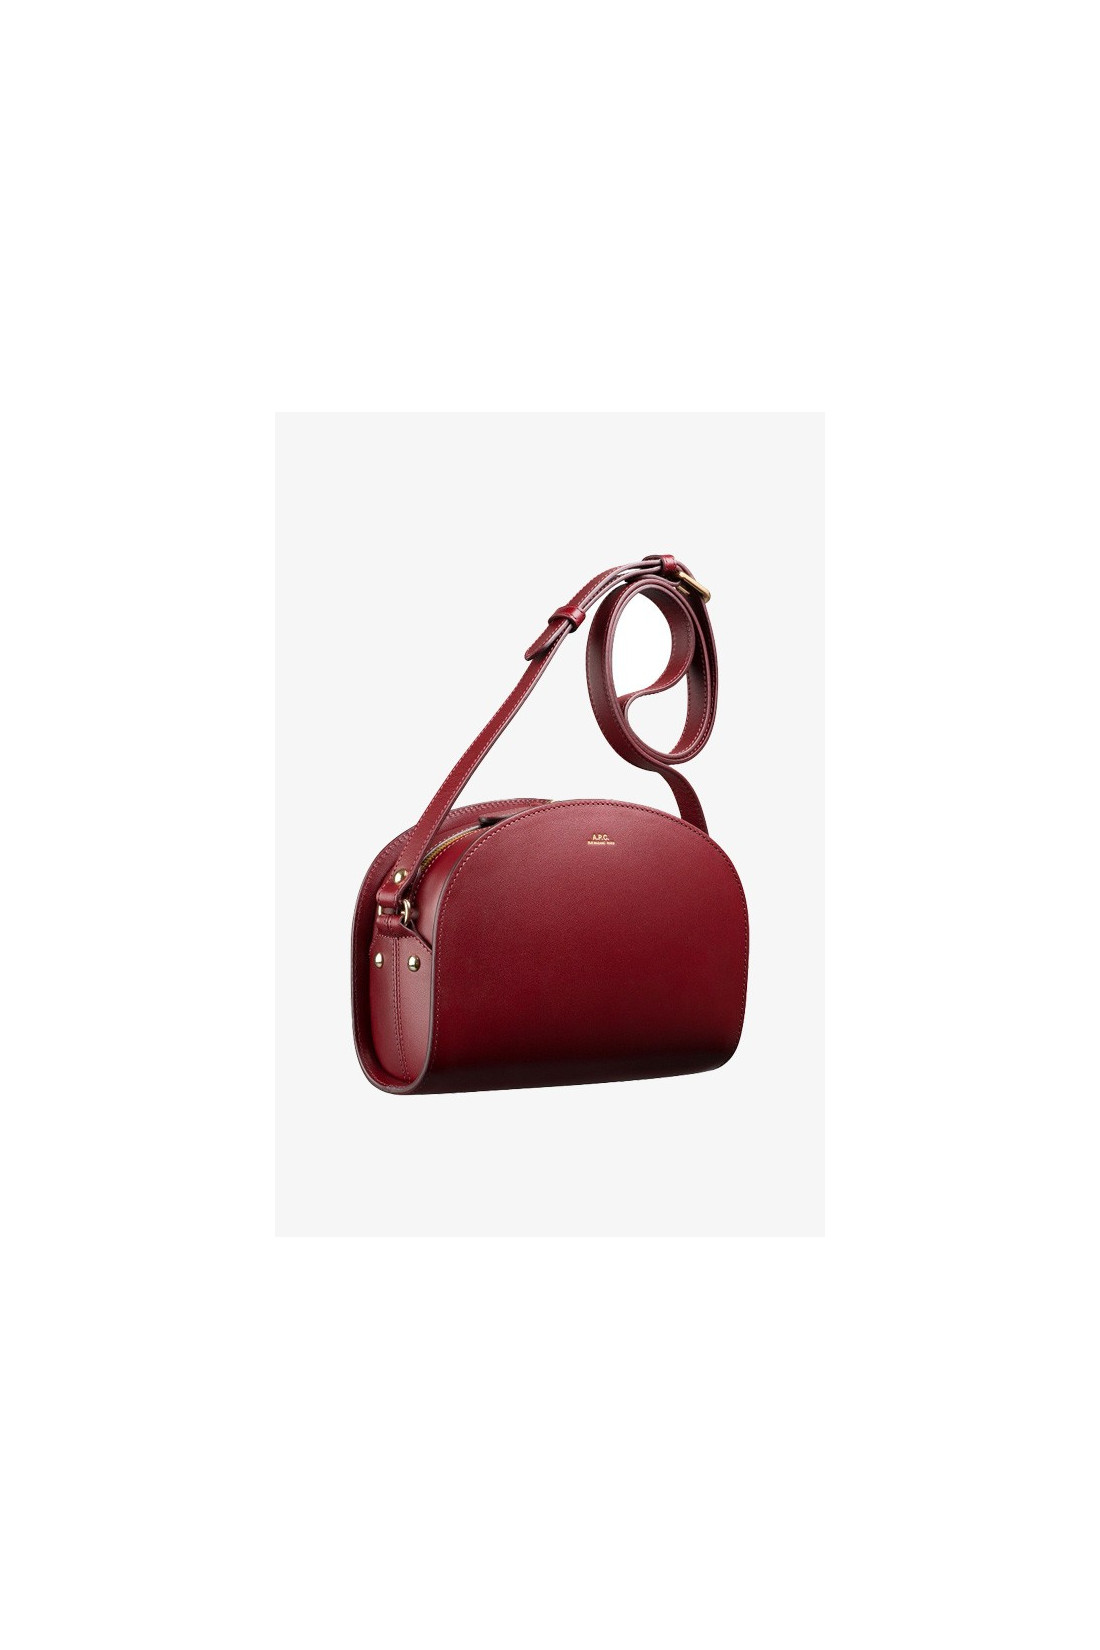 A.P.C. FOR WOMAN / Sac demi-lune Vino